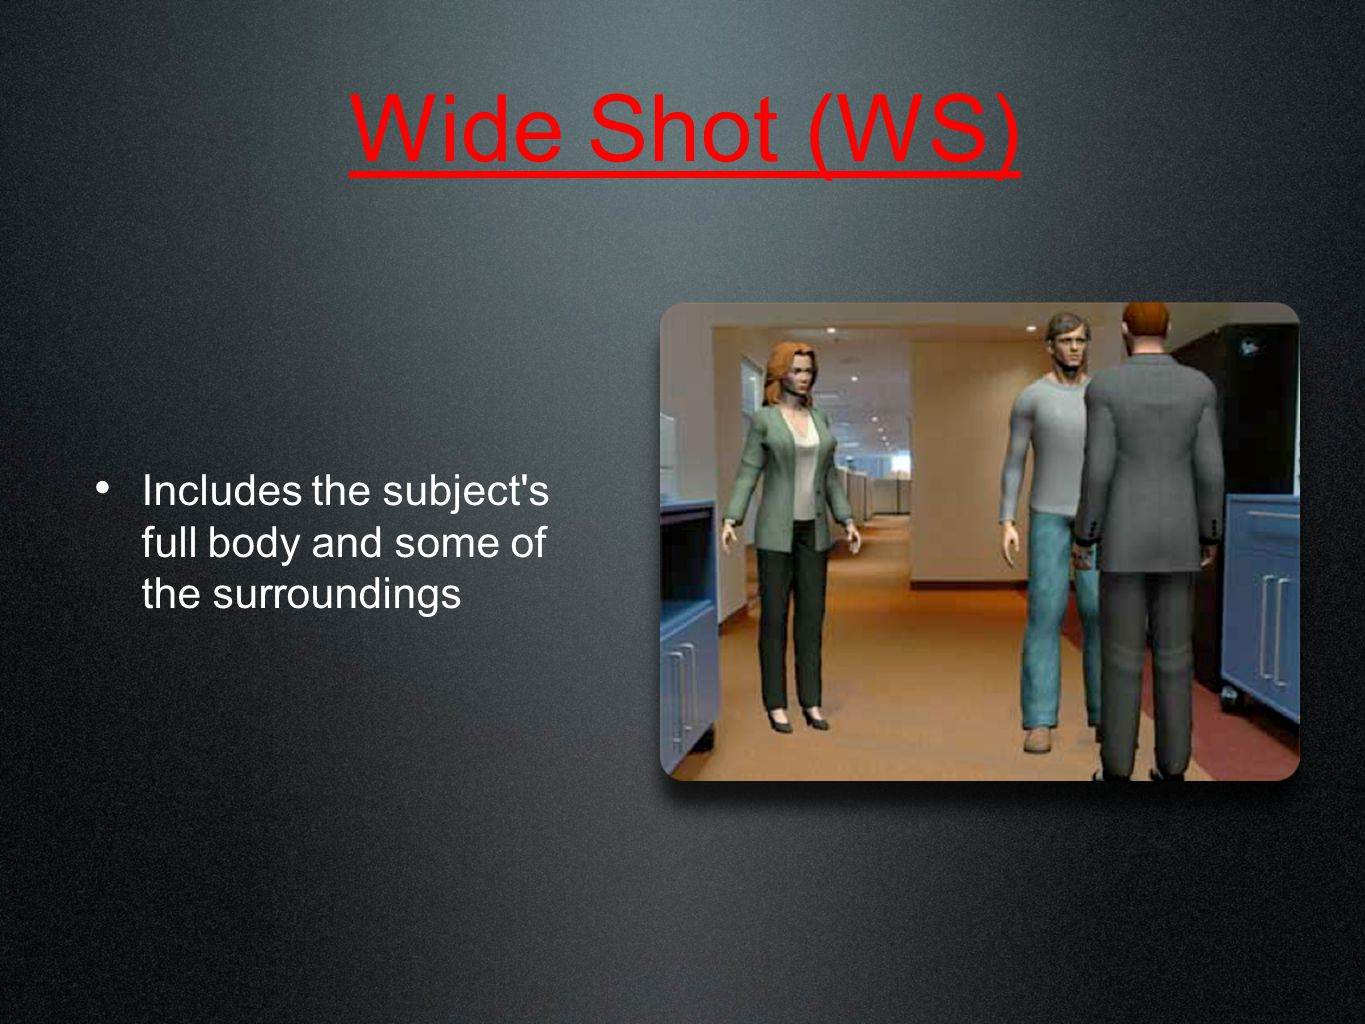 Medium Shot (MS) Includes about half of the subject's body and less of the background